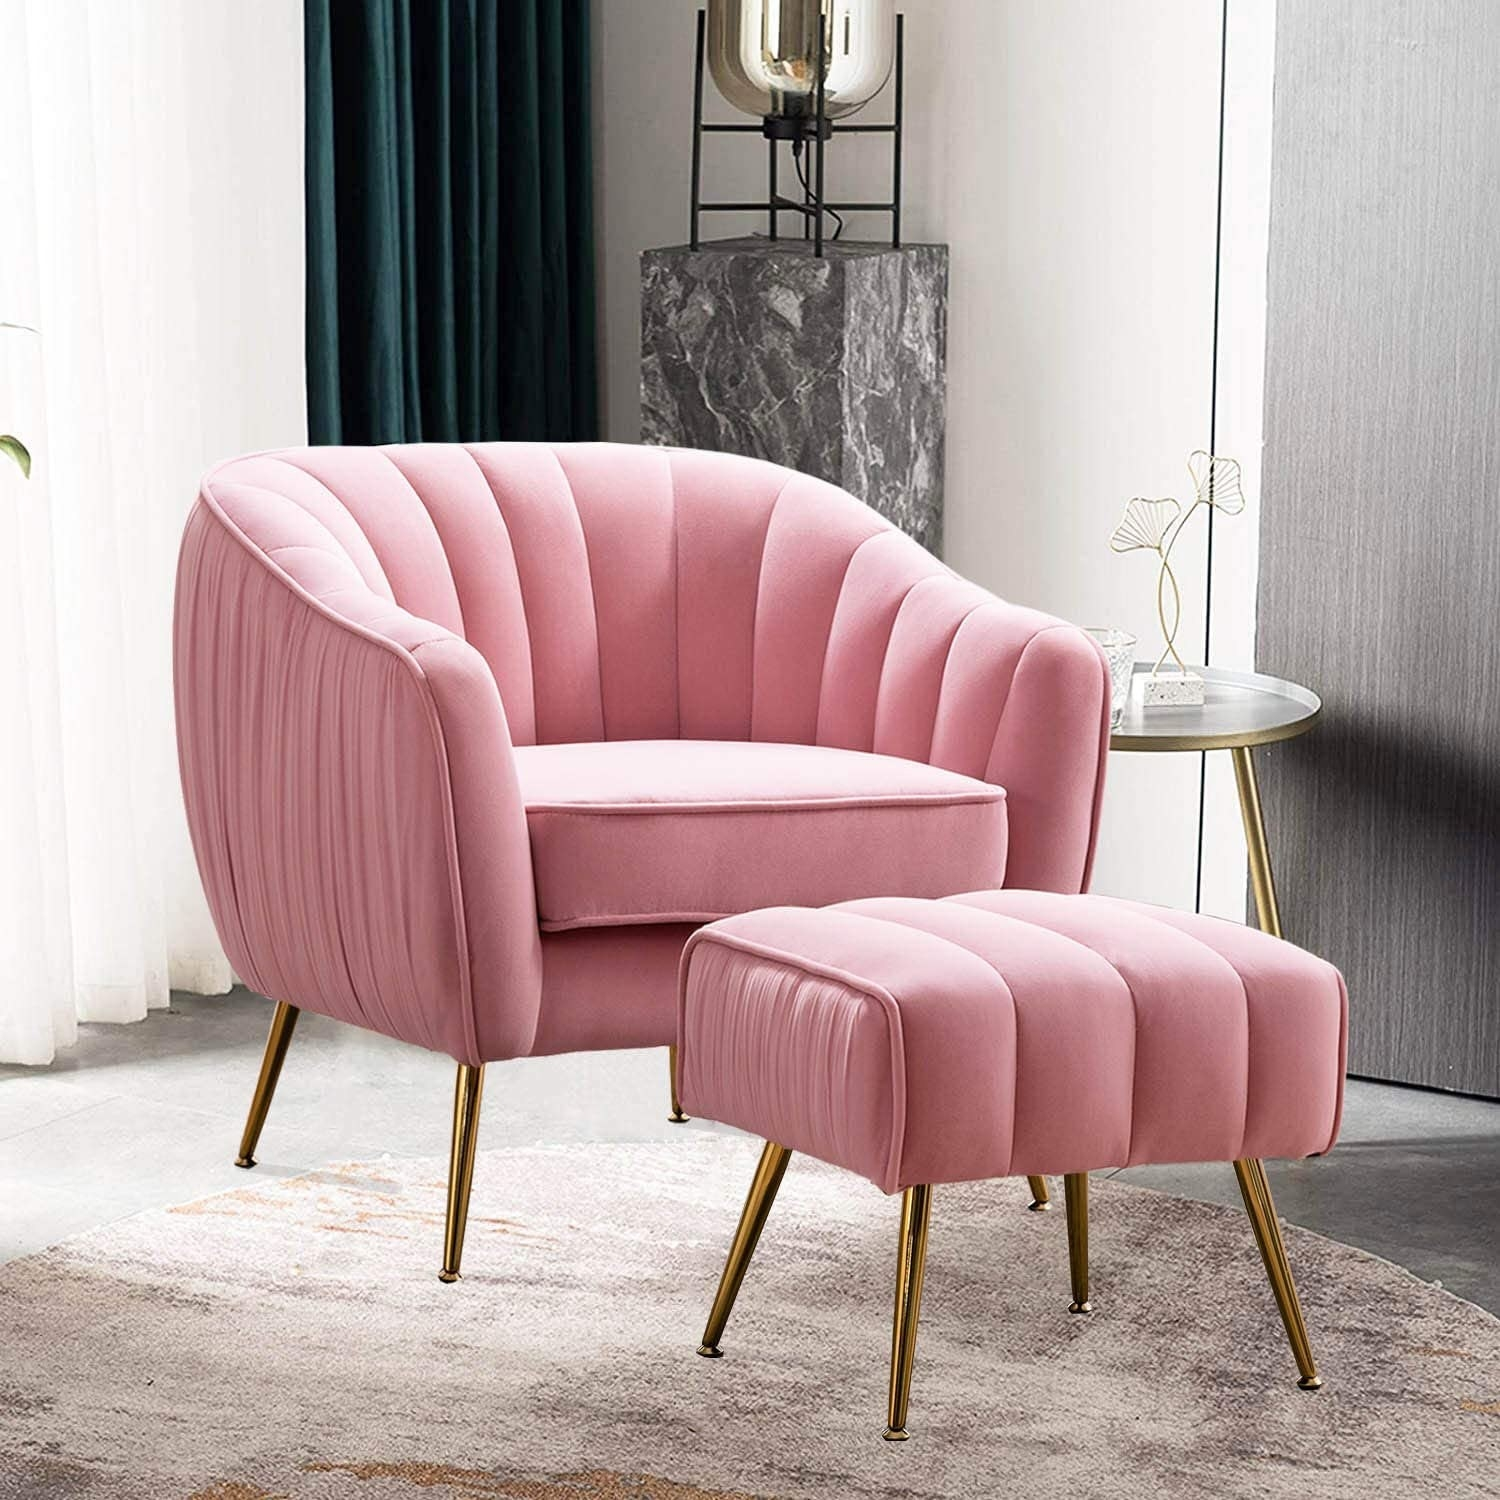 matching pink accent chair and ottoman both which have gold legs